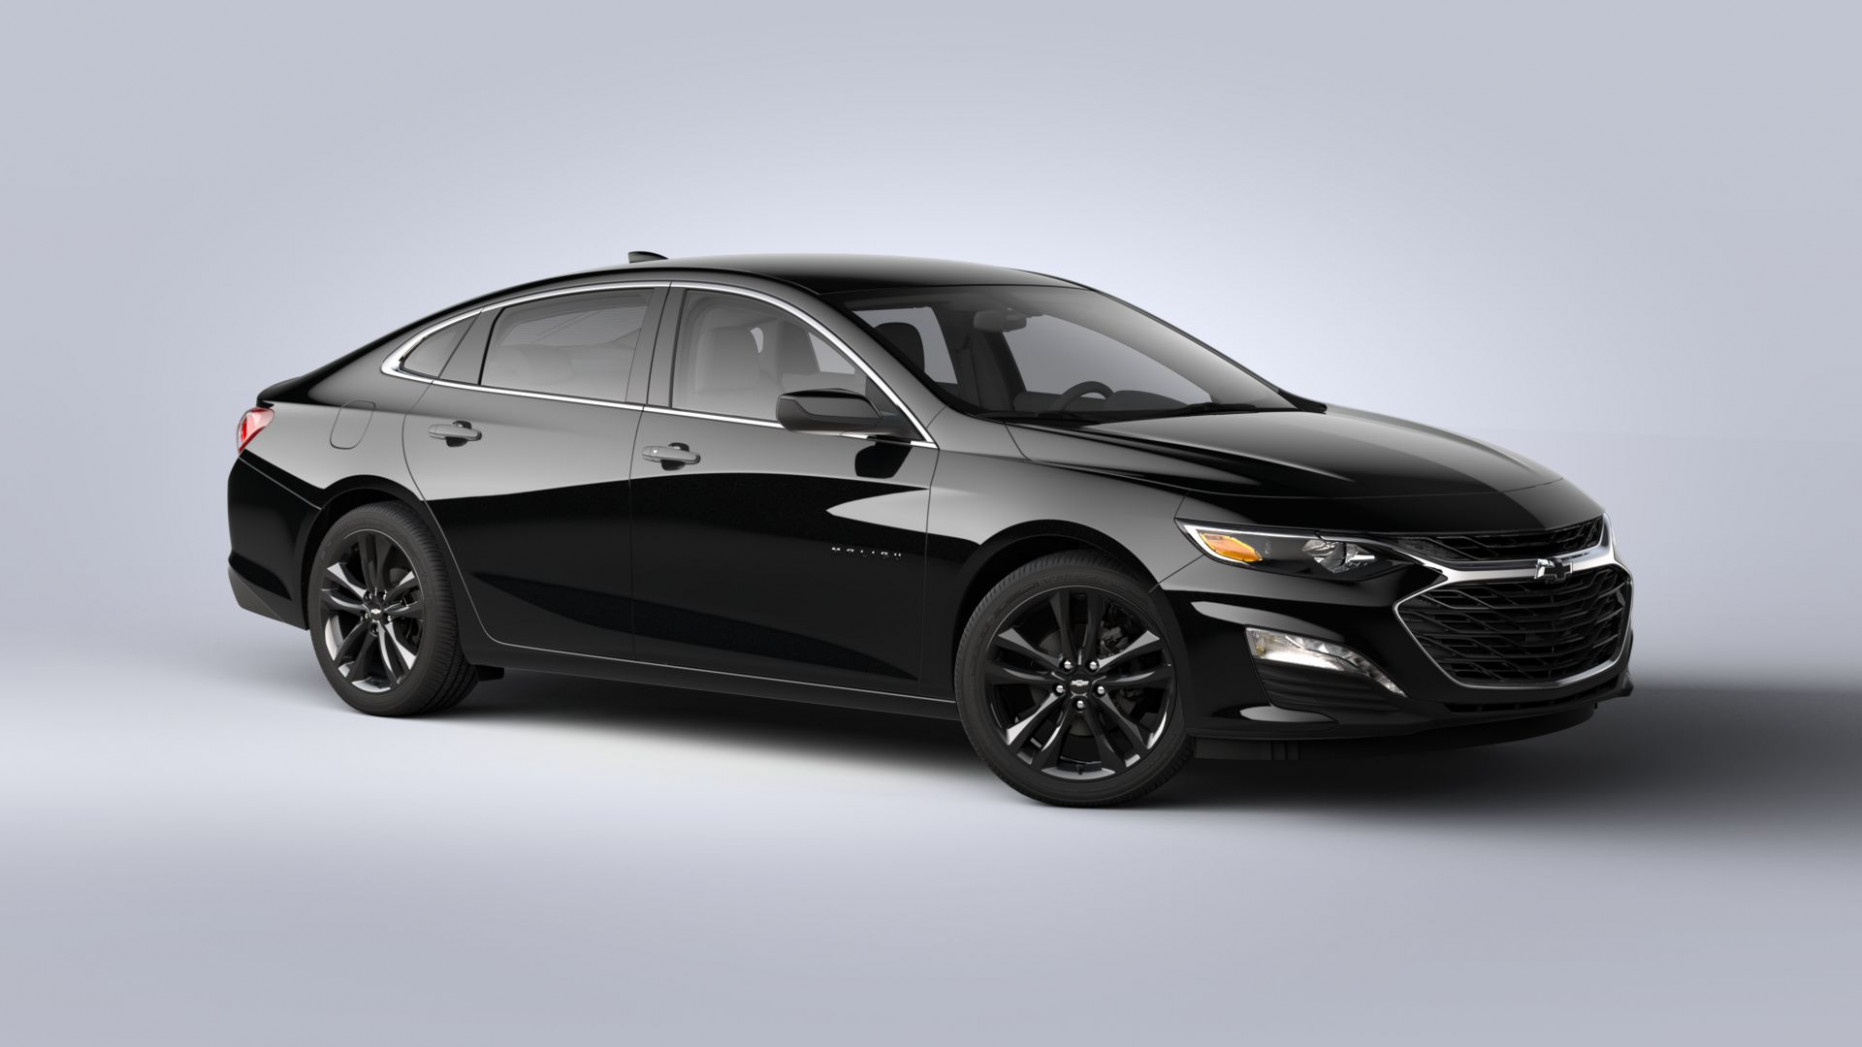 6 Chevrolet Malibu Adds New Midnight Edition Package | GM Authority - chevrolet malibu 2020 price